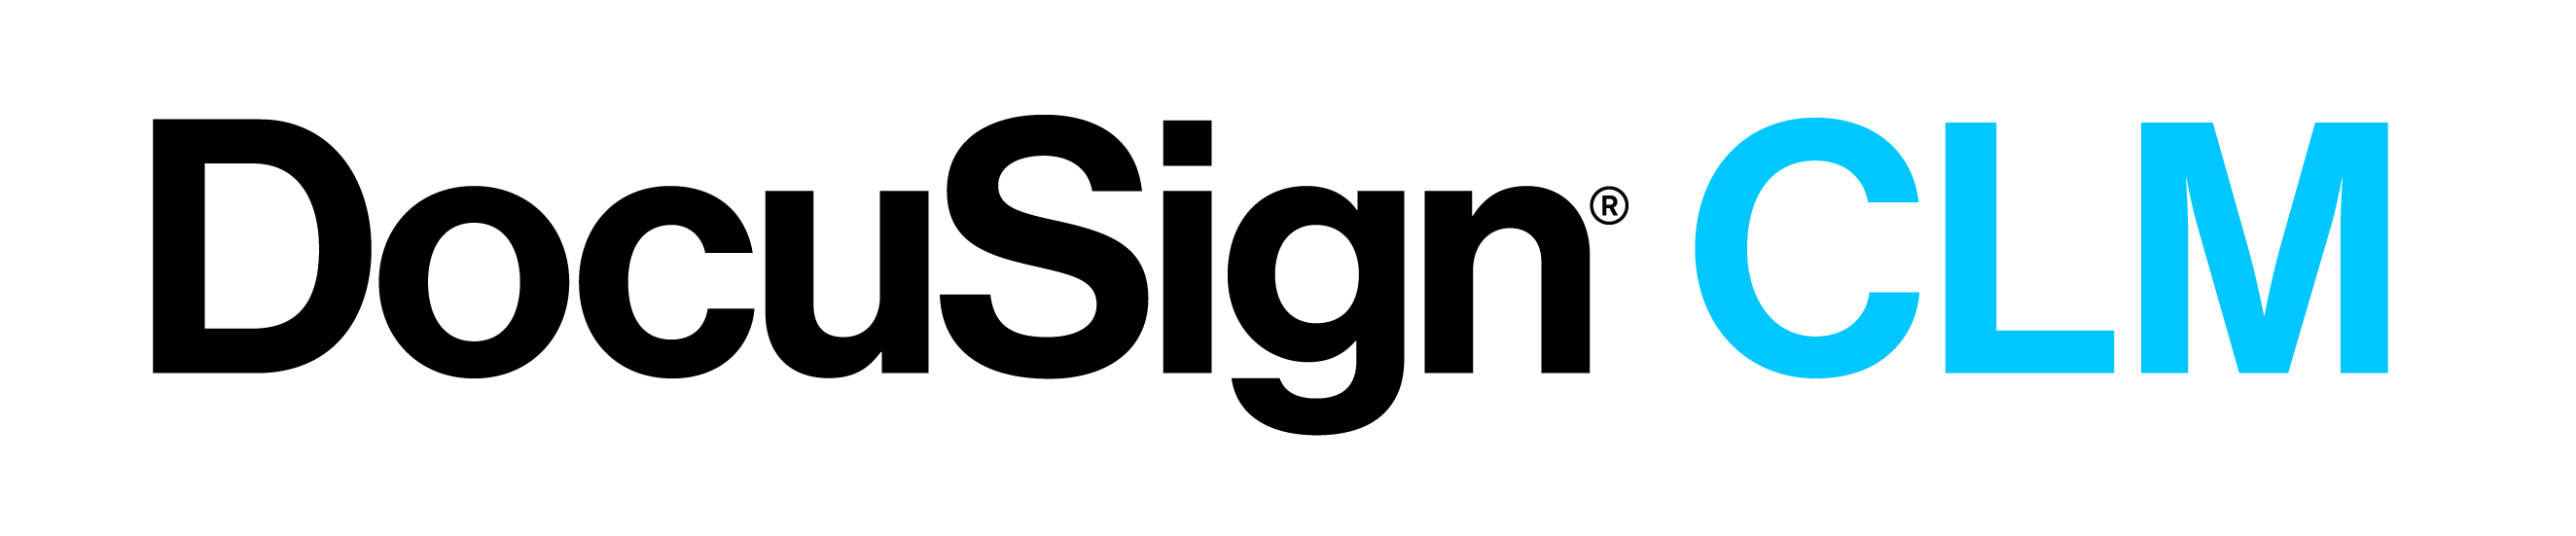 DocuSign CLM logo